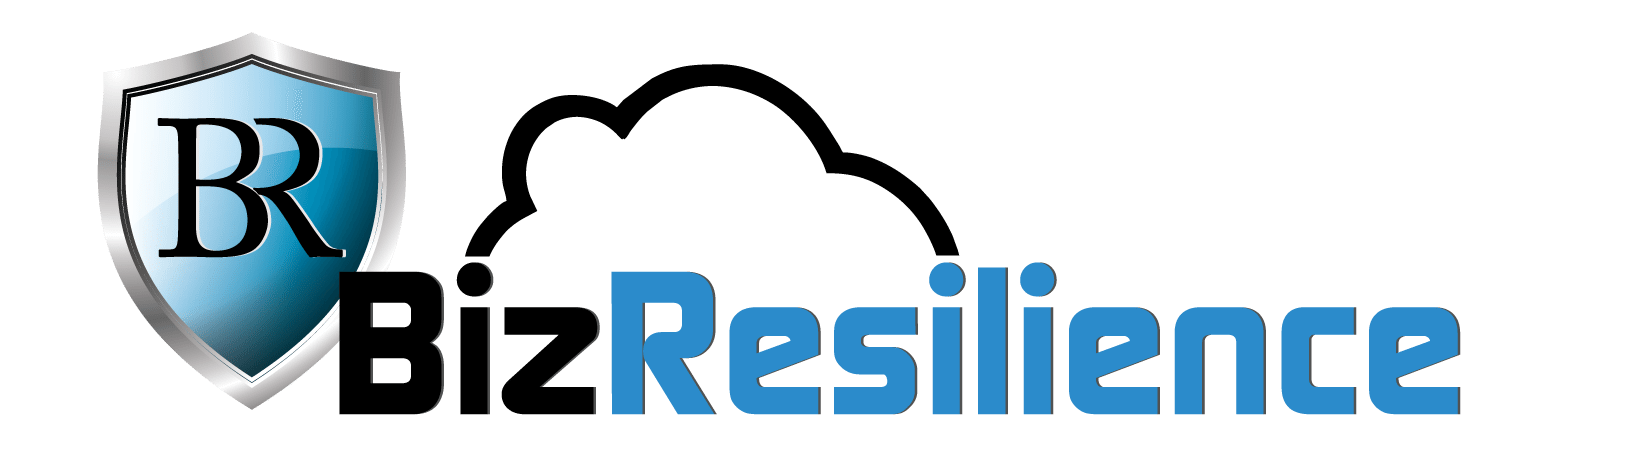 BizResilience - Business Resiliency